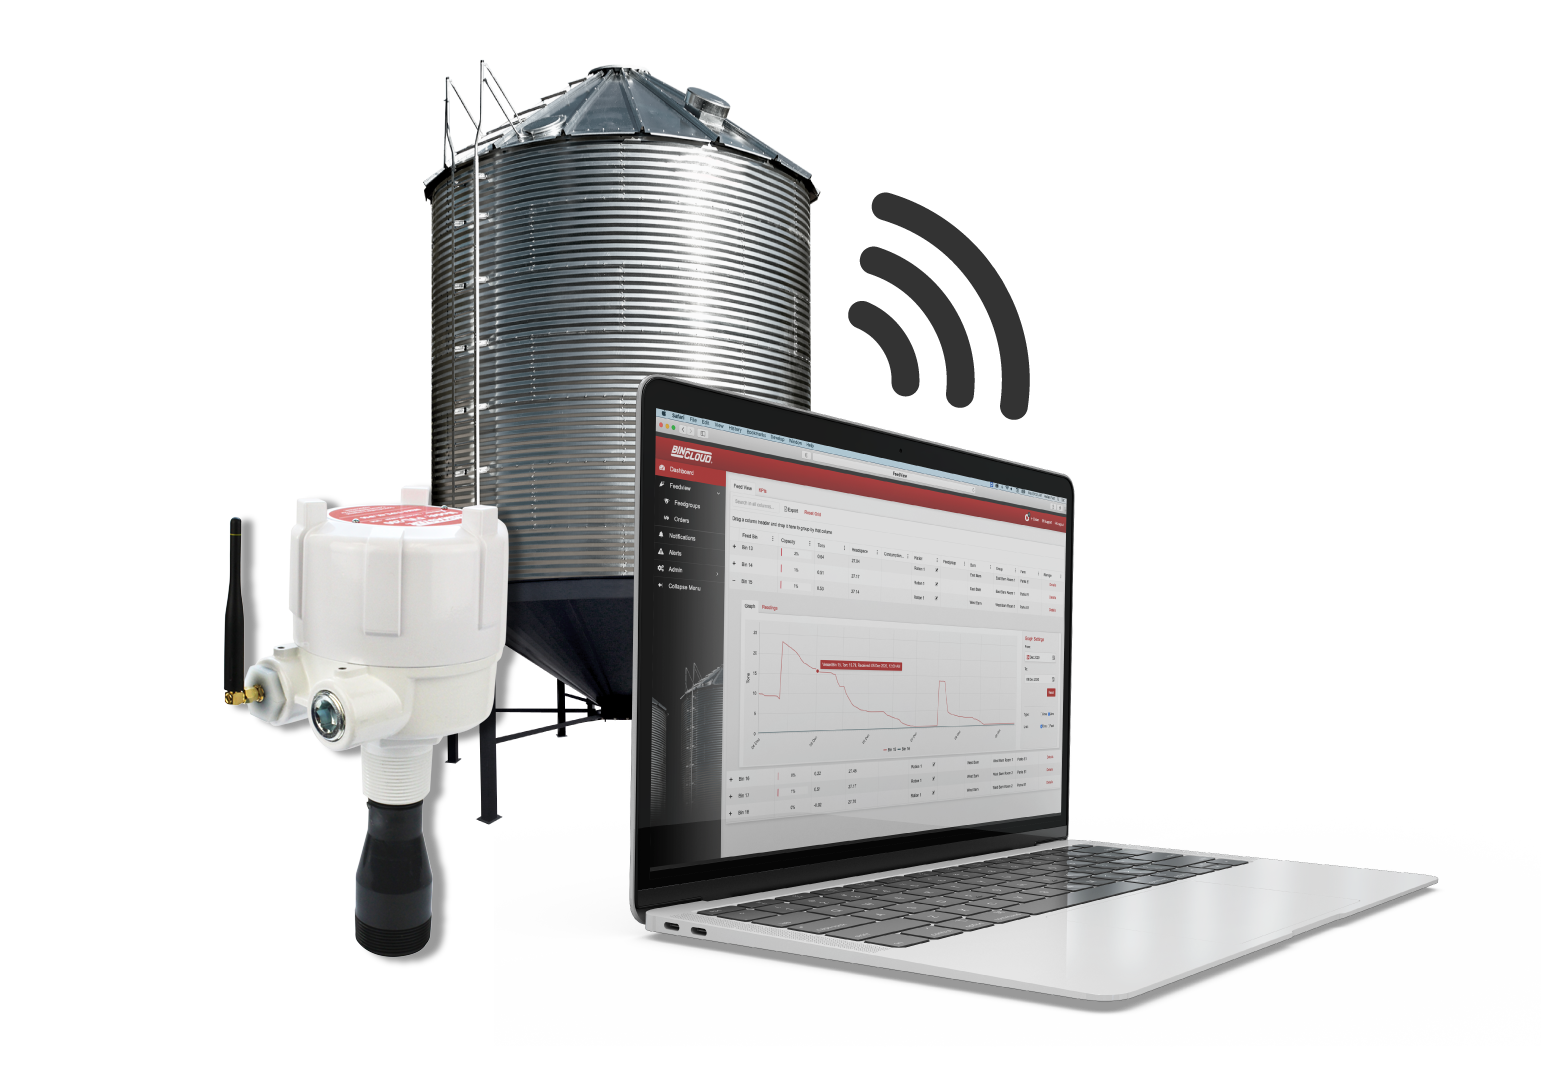 bin sensor, BinCloud/feedview/pitview app, inventory management